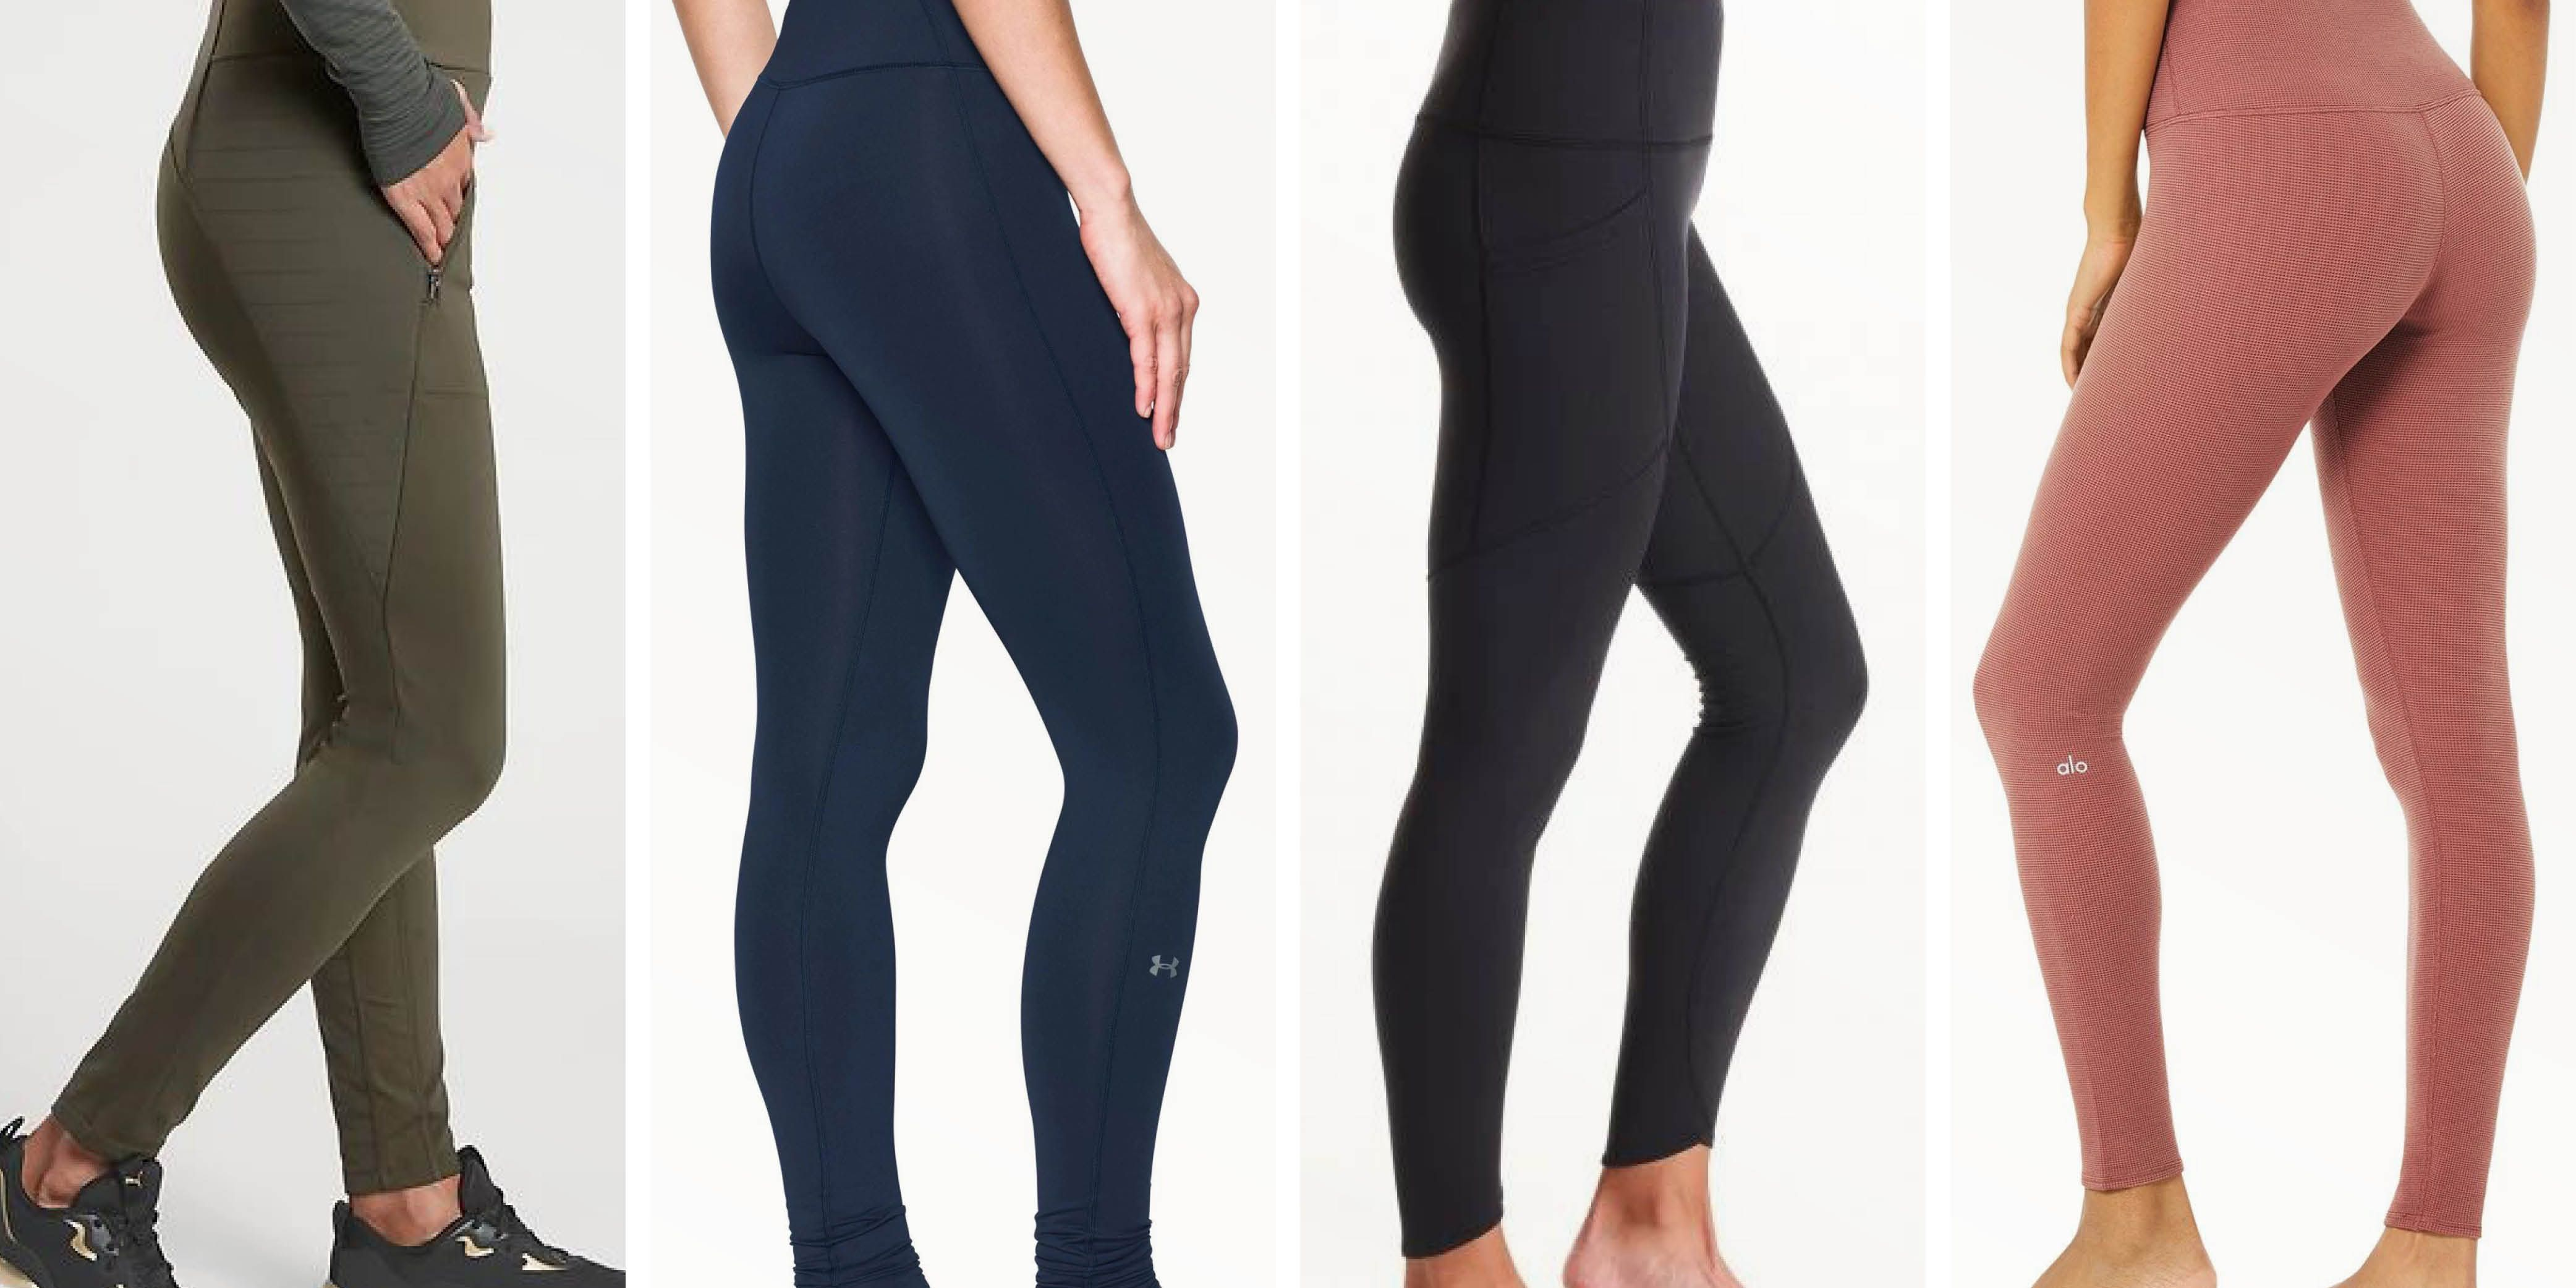 SHEDJT Womens Thermal Thick Fleece Lined Stretch Pants Winter Warm Thin Leggings